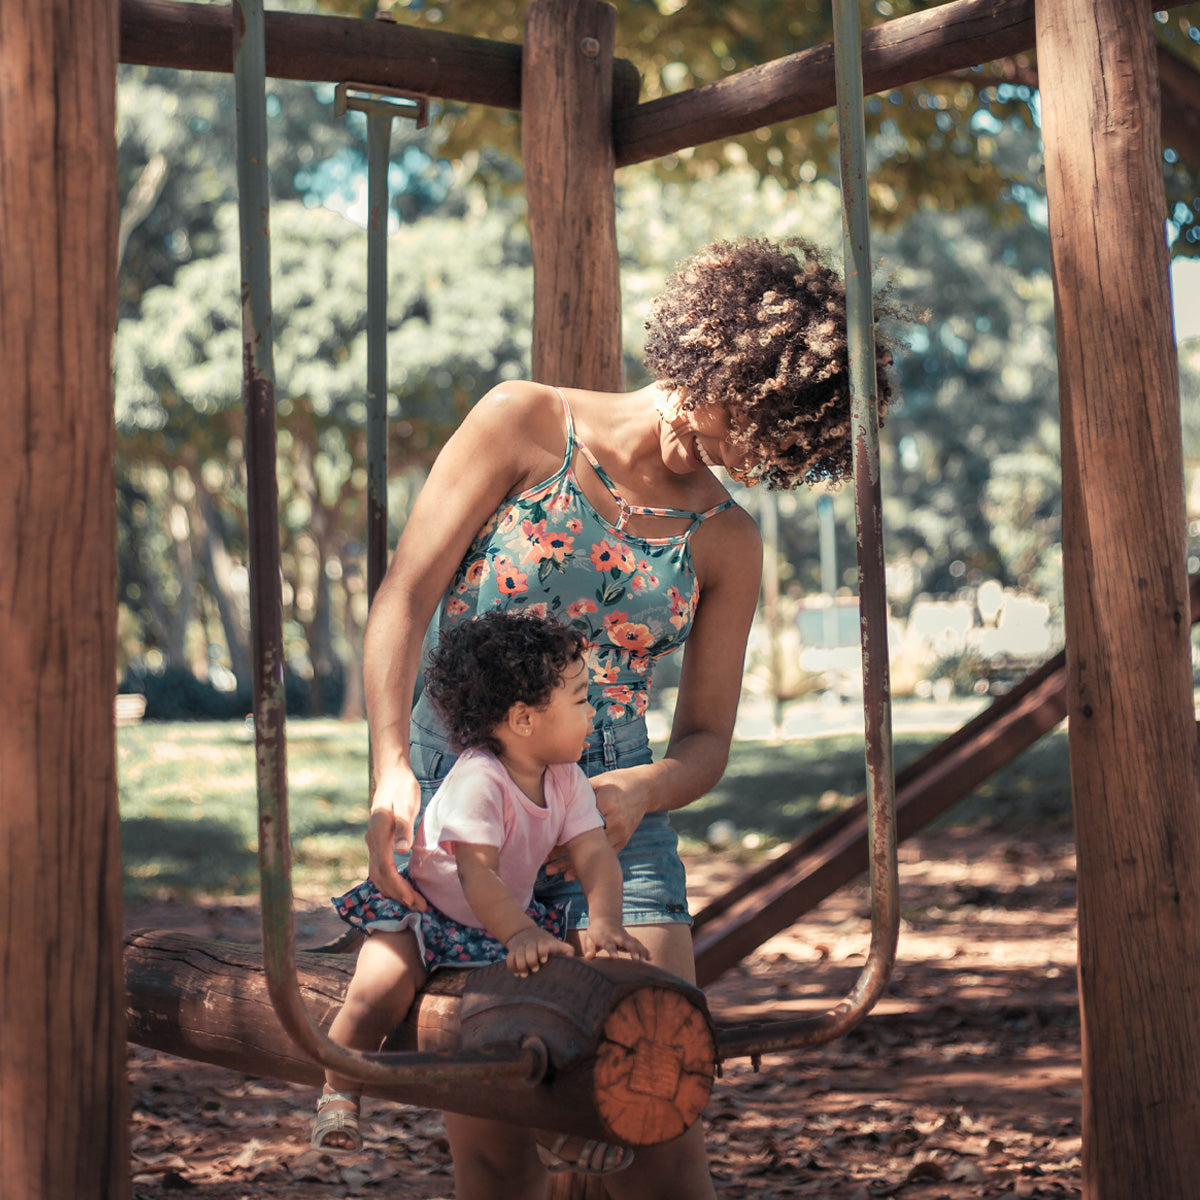 Mother and child playing at the park, connecting with nature.